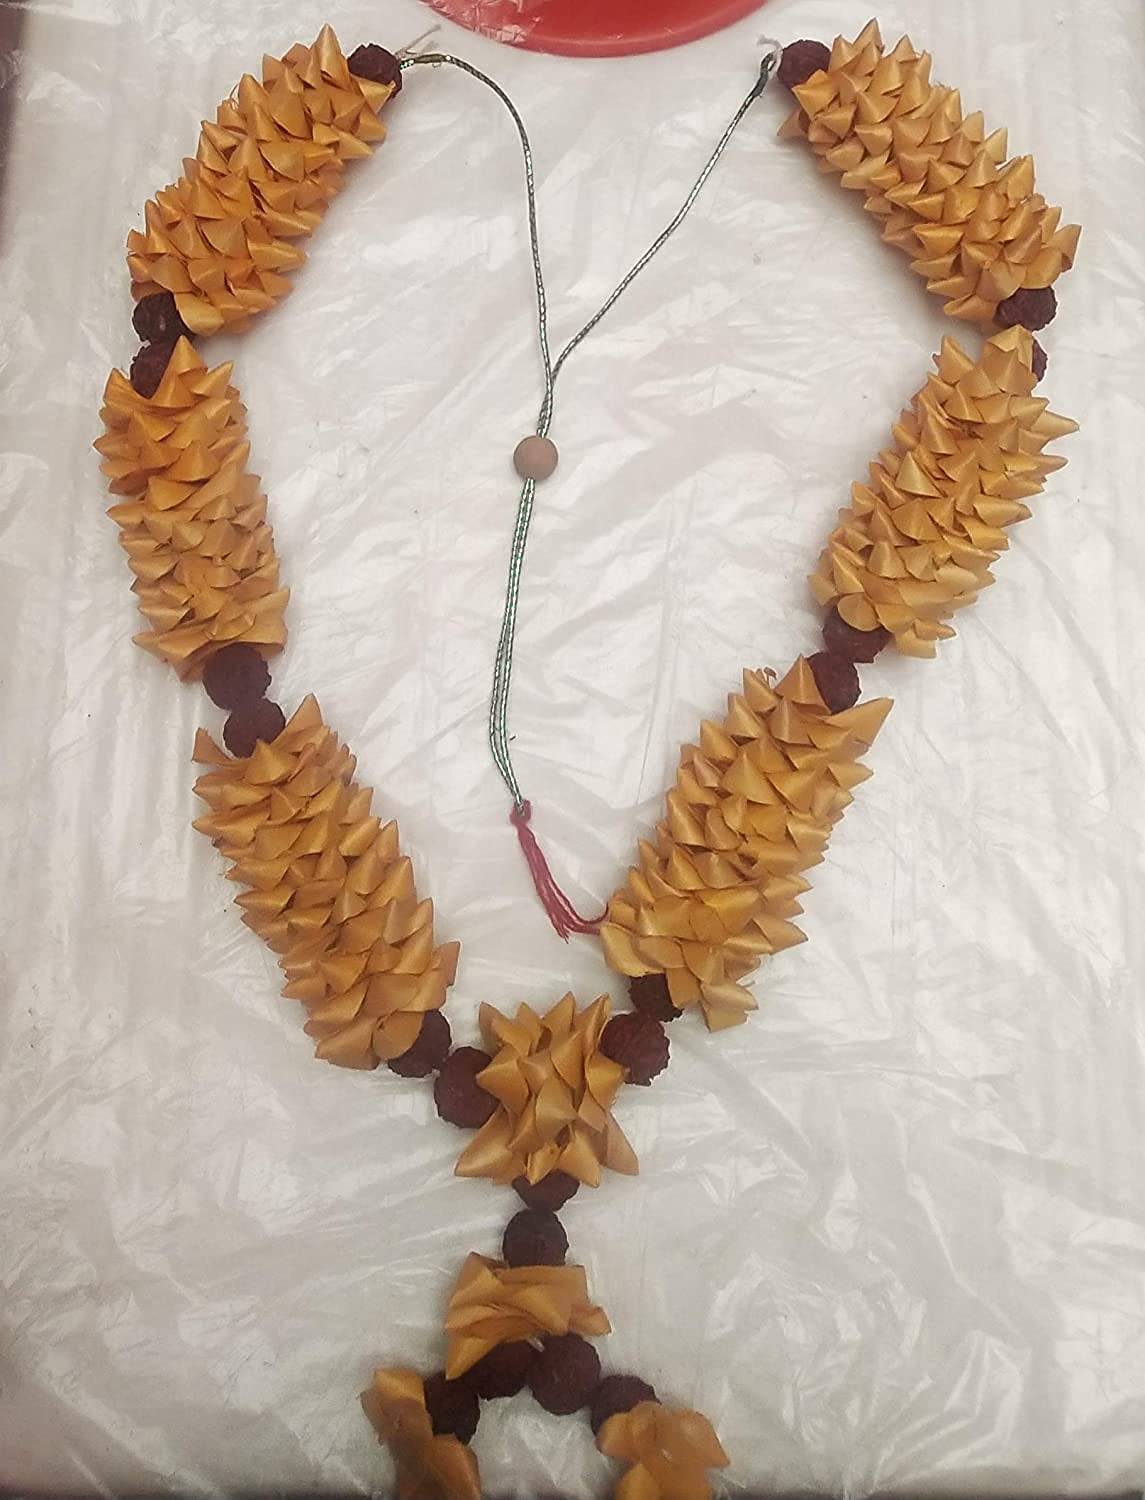 PLANET07 Sandalwood Shavings Super beauty product restock quality top! Haar Chandan Mala 3 in Bunch one Si OFFicial site